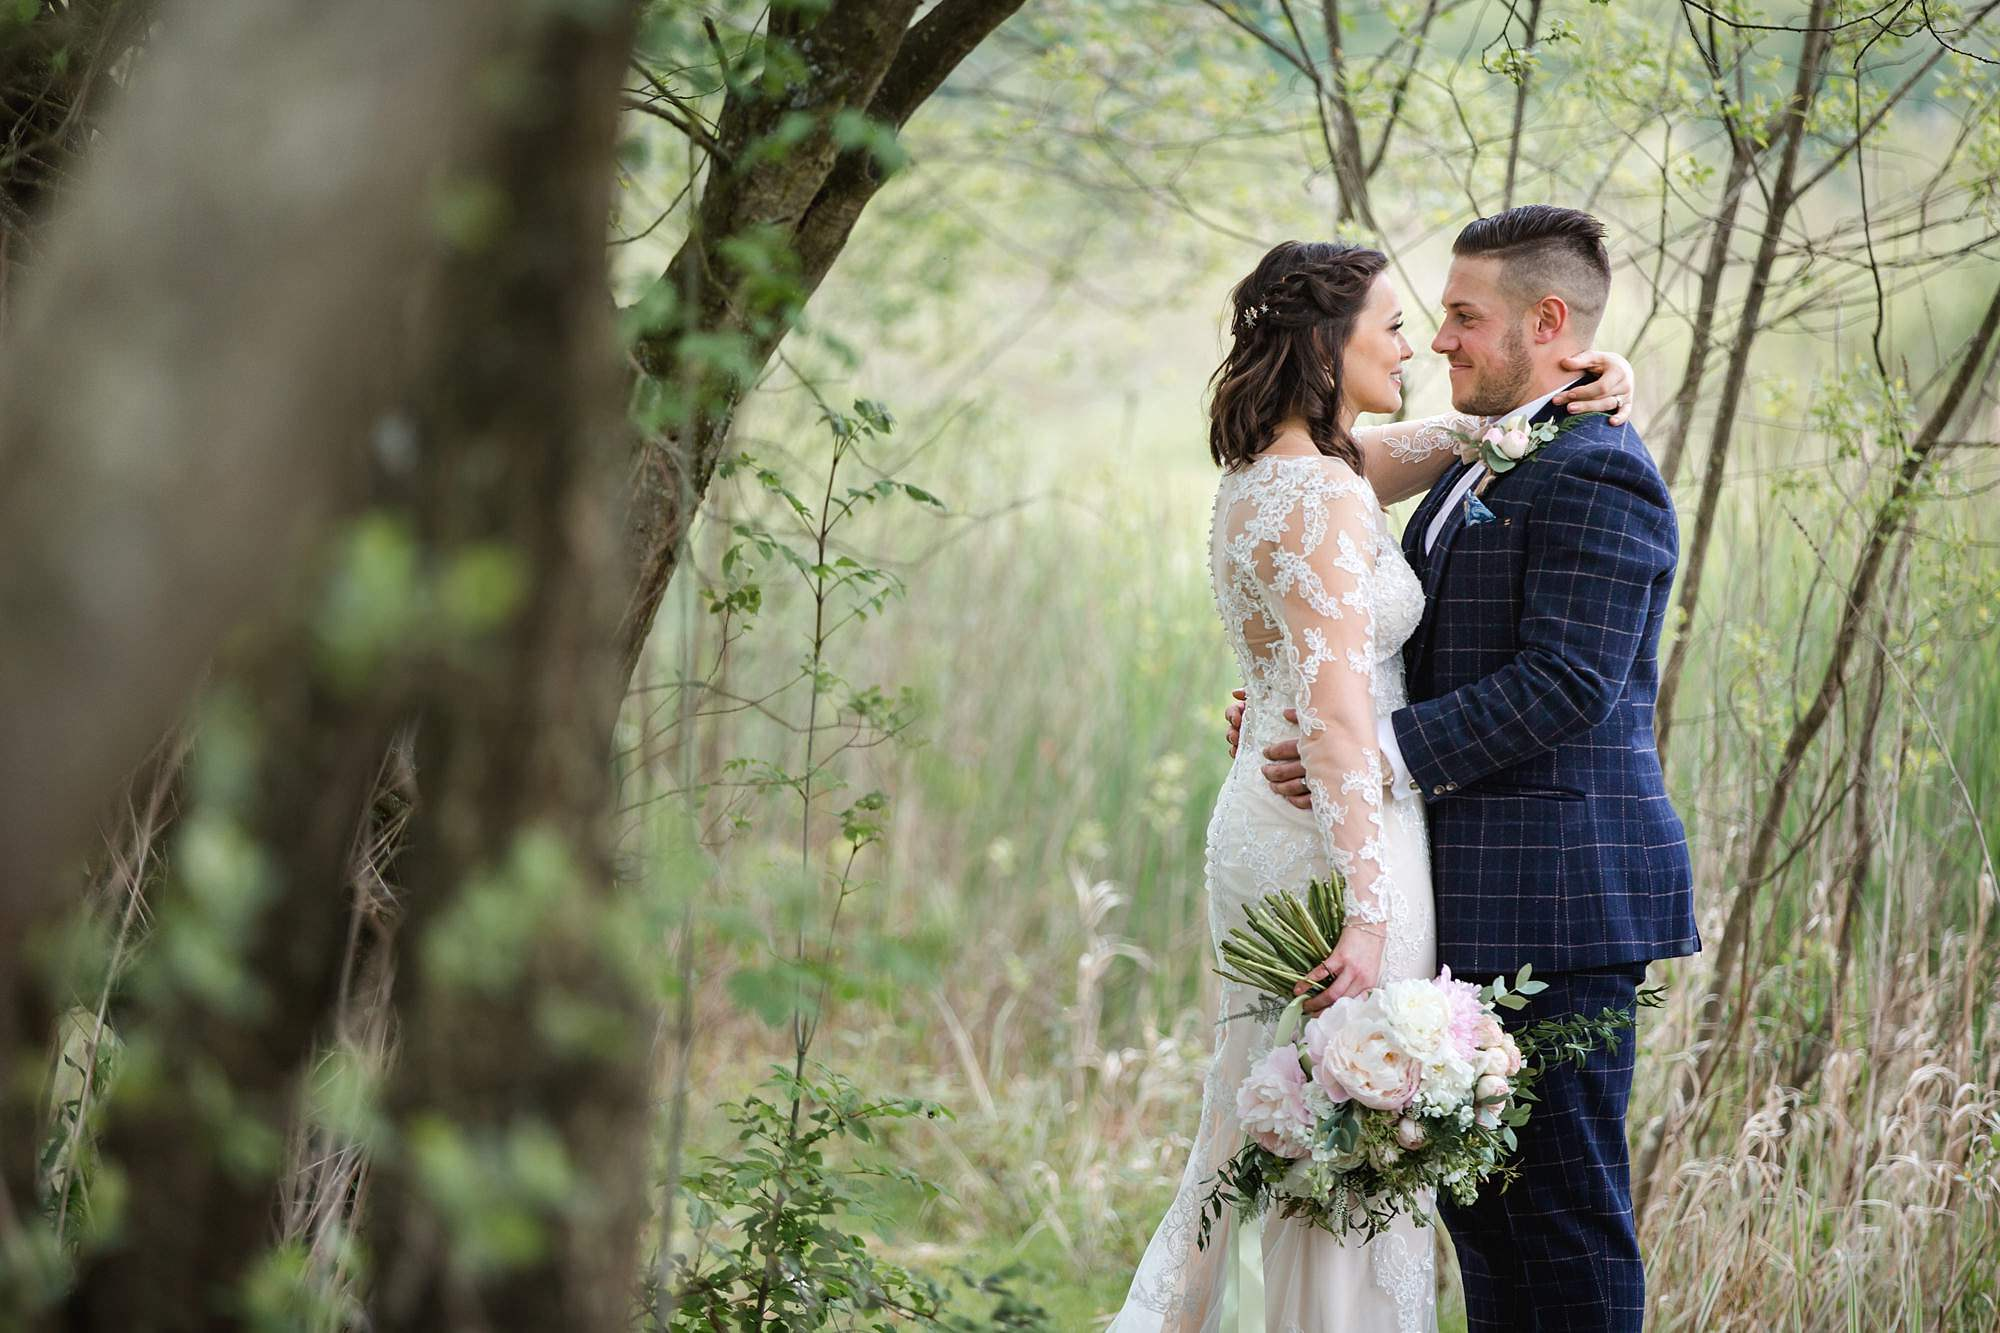 humanist wedding old greens barn bride and groom together under trees